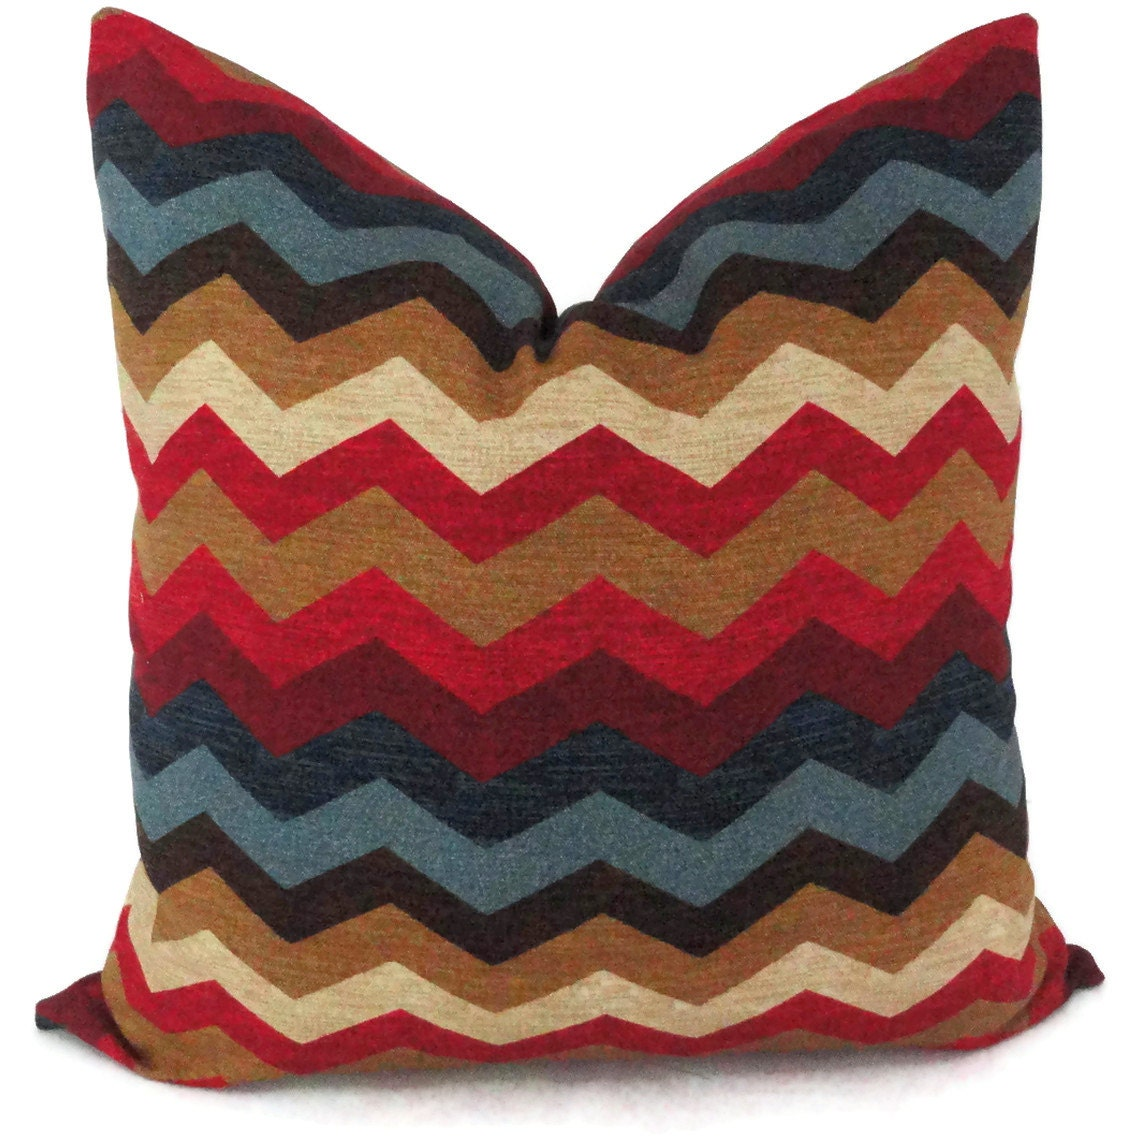 Blue and Red Zig Zag Decorative Pillow Cover 18x18 20x20